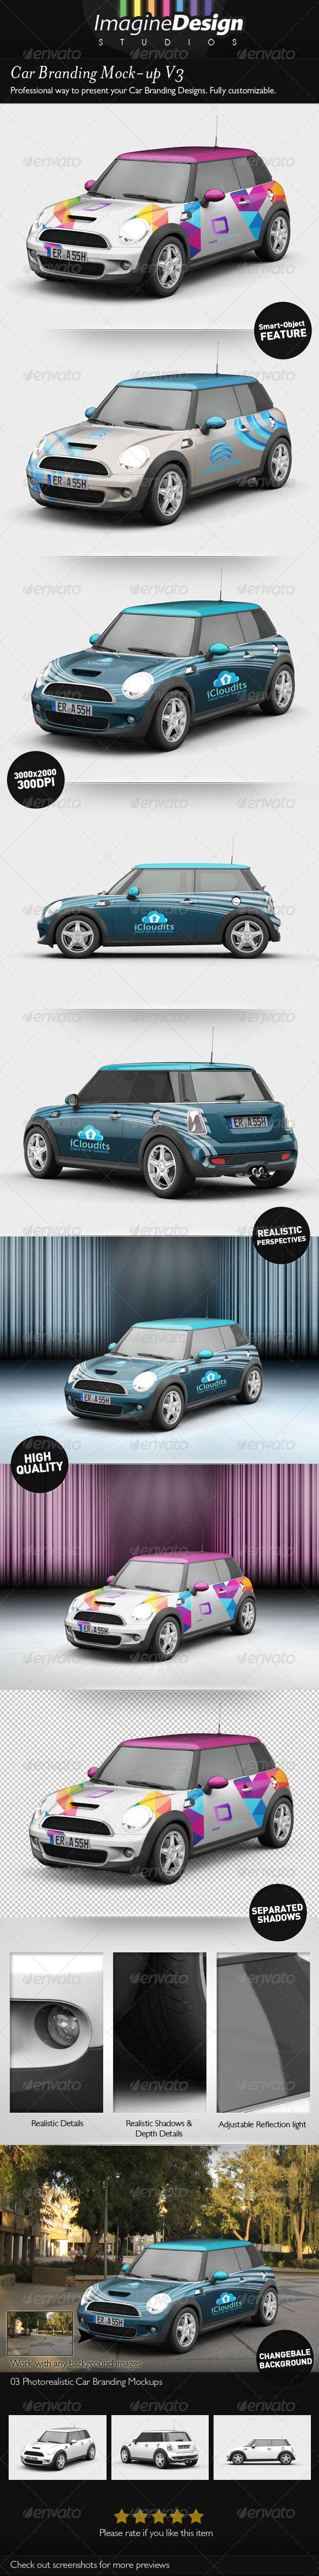 Car Branding Mock-up V3 - http://startupstacks.com/graphics/car-branding-mock-v3.html - free download